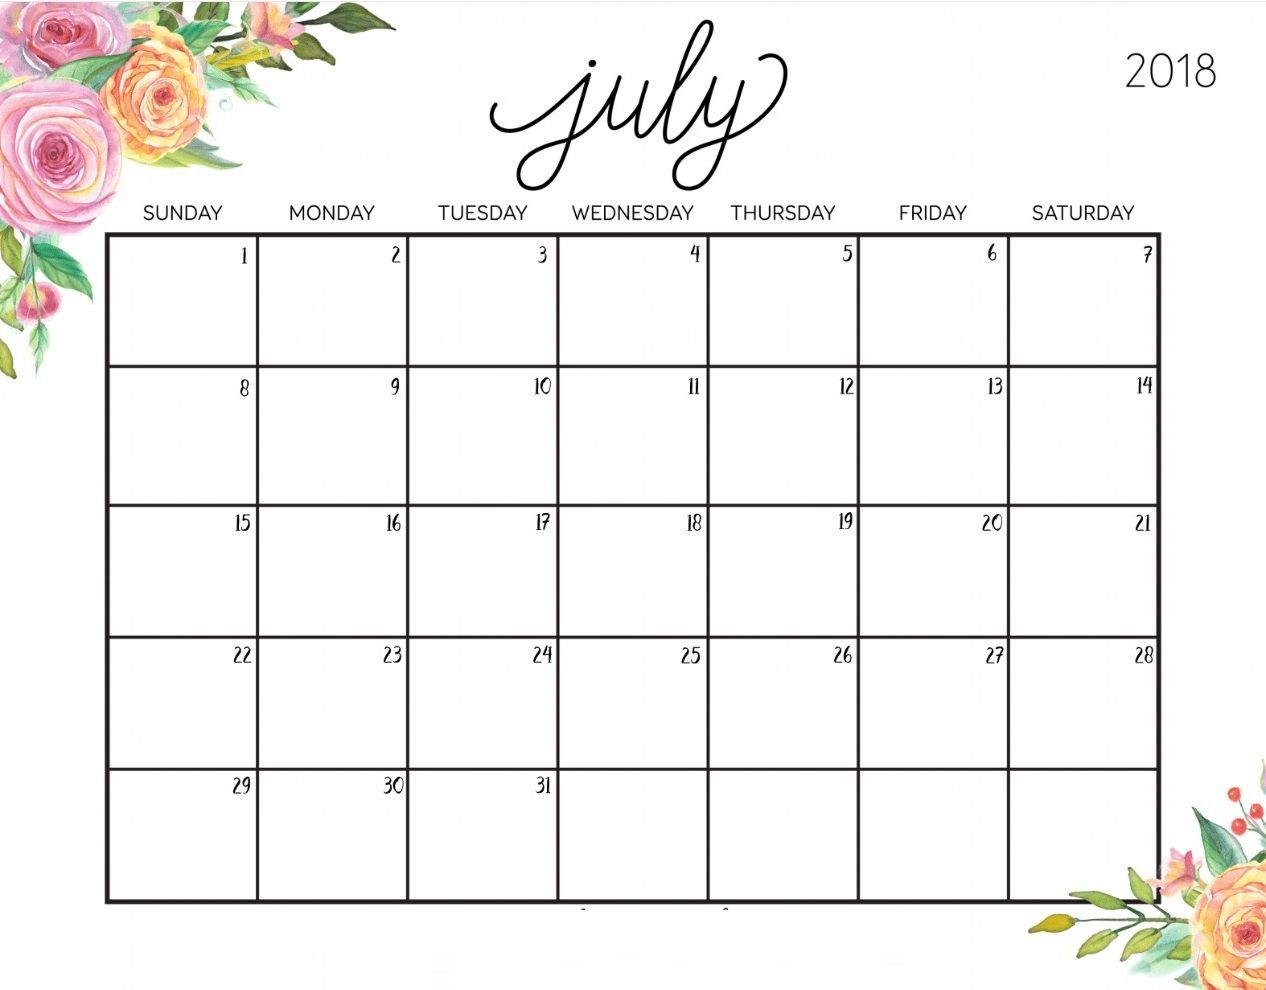 photograph relating to July Calendar Printable named July 2018 Calendar Printable Adorable July 2018 Printable